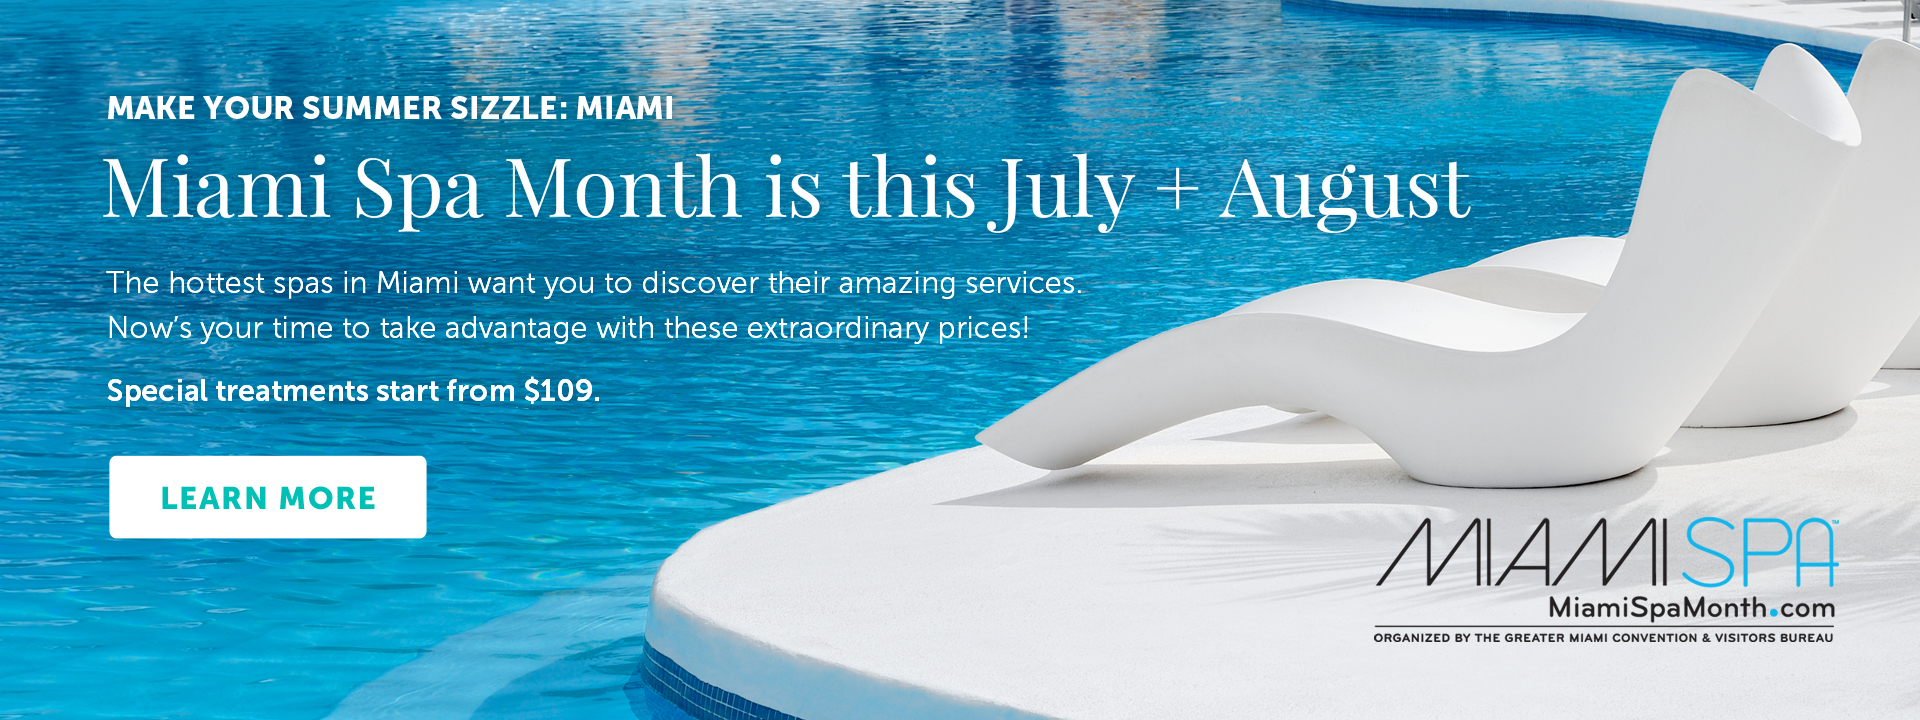 Make Your Summer Sizzle: Miami - Special treatments start from $109